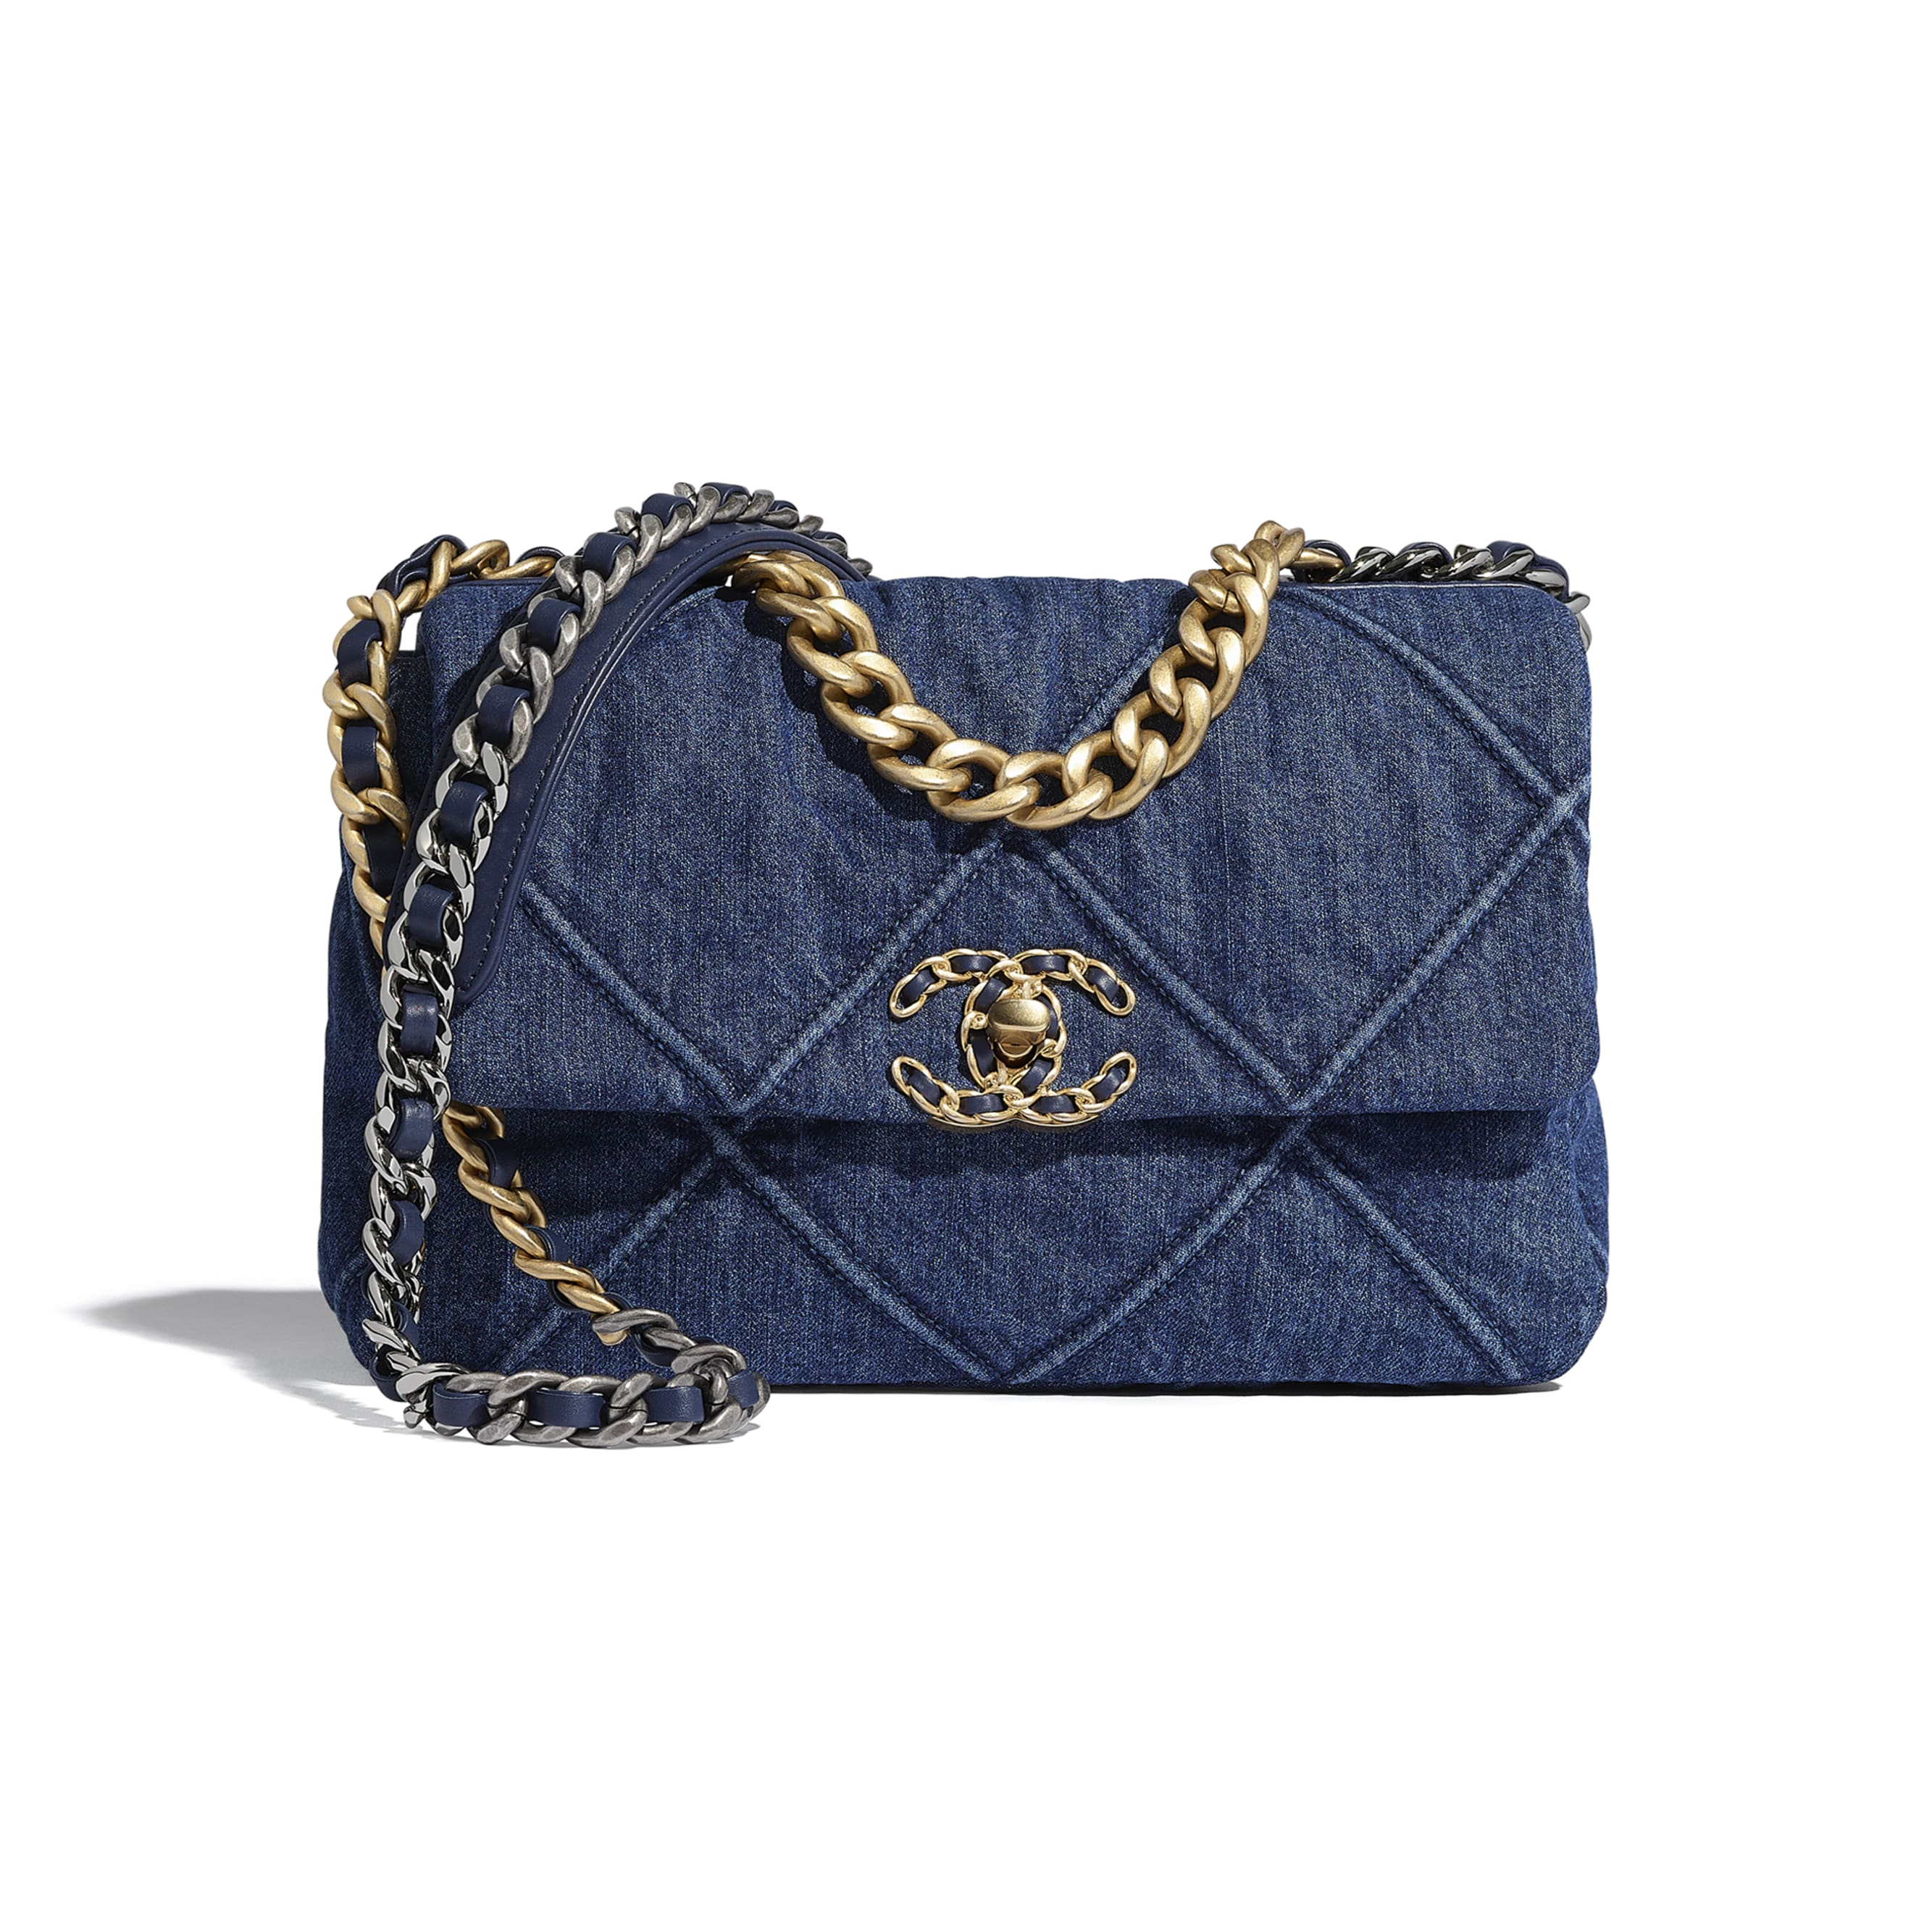 CHANEL 19 Flap Bag - Blue - Denim, Gold-Tone, Silver-Tone & Ruthenium-Finish Metal - Default view - see standard sized version